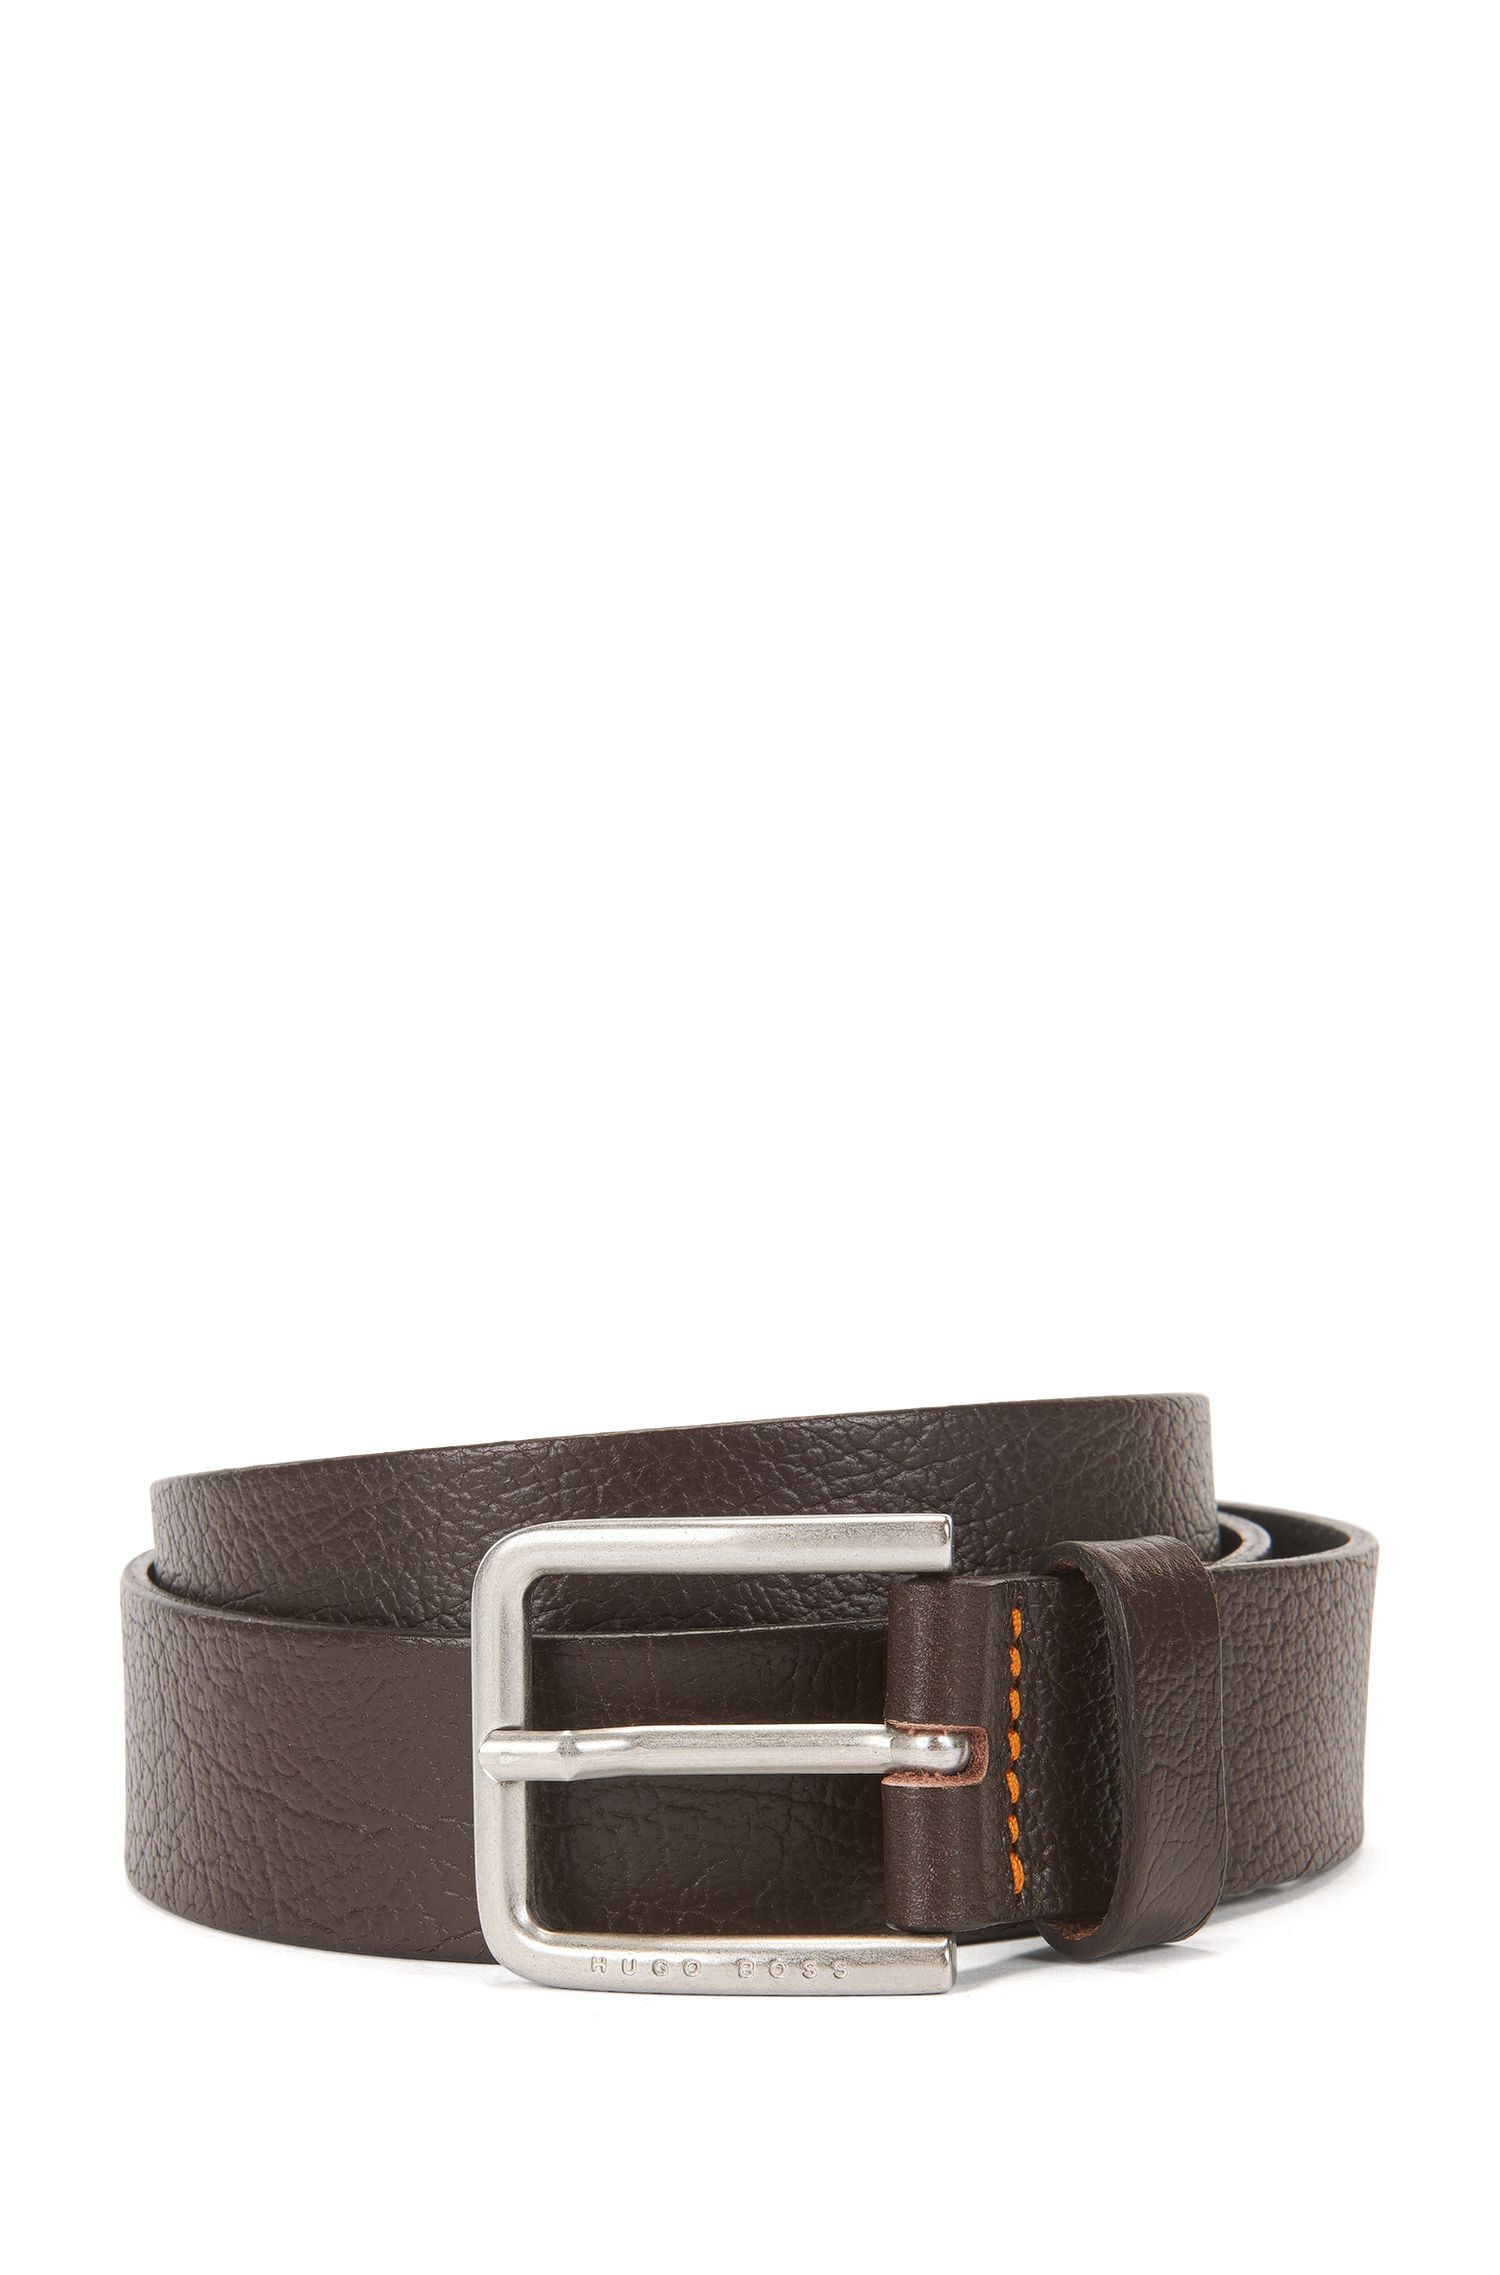 Embossed-leather belt with engraved logo detail